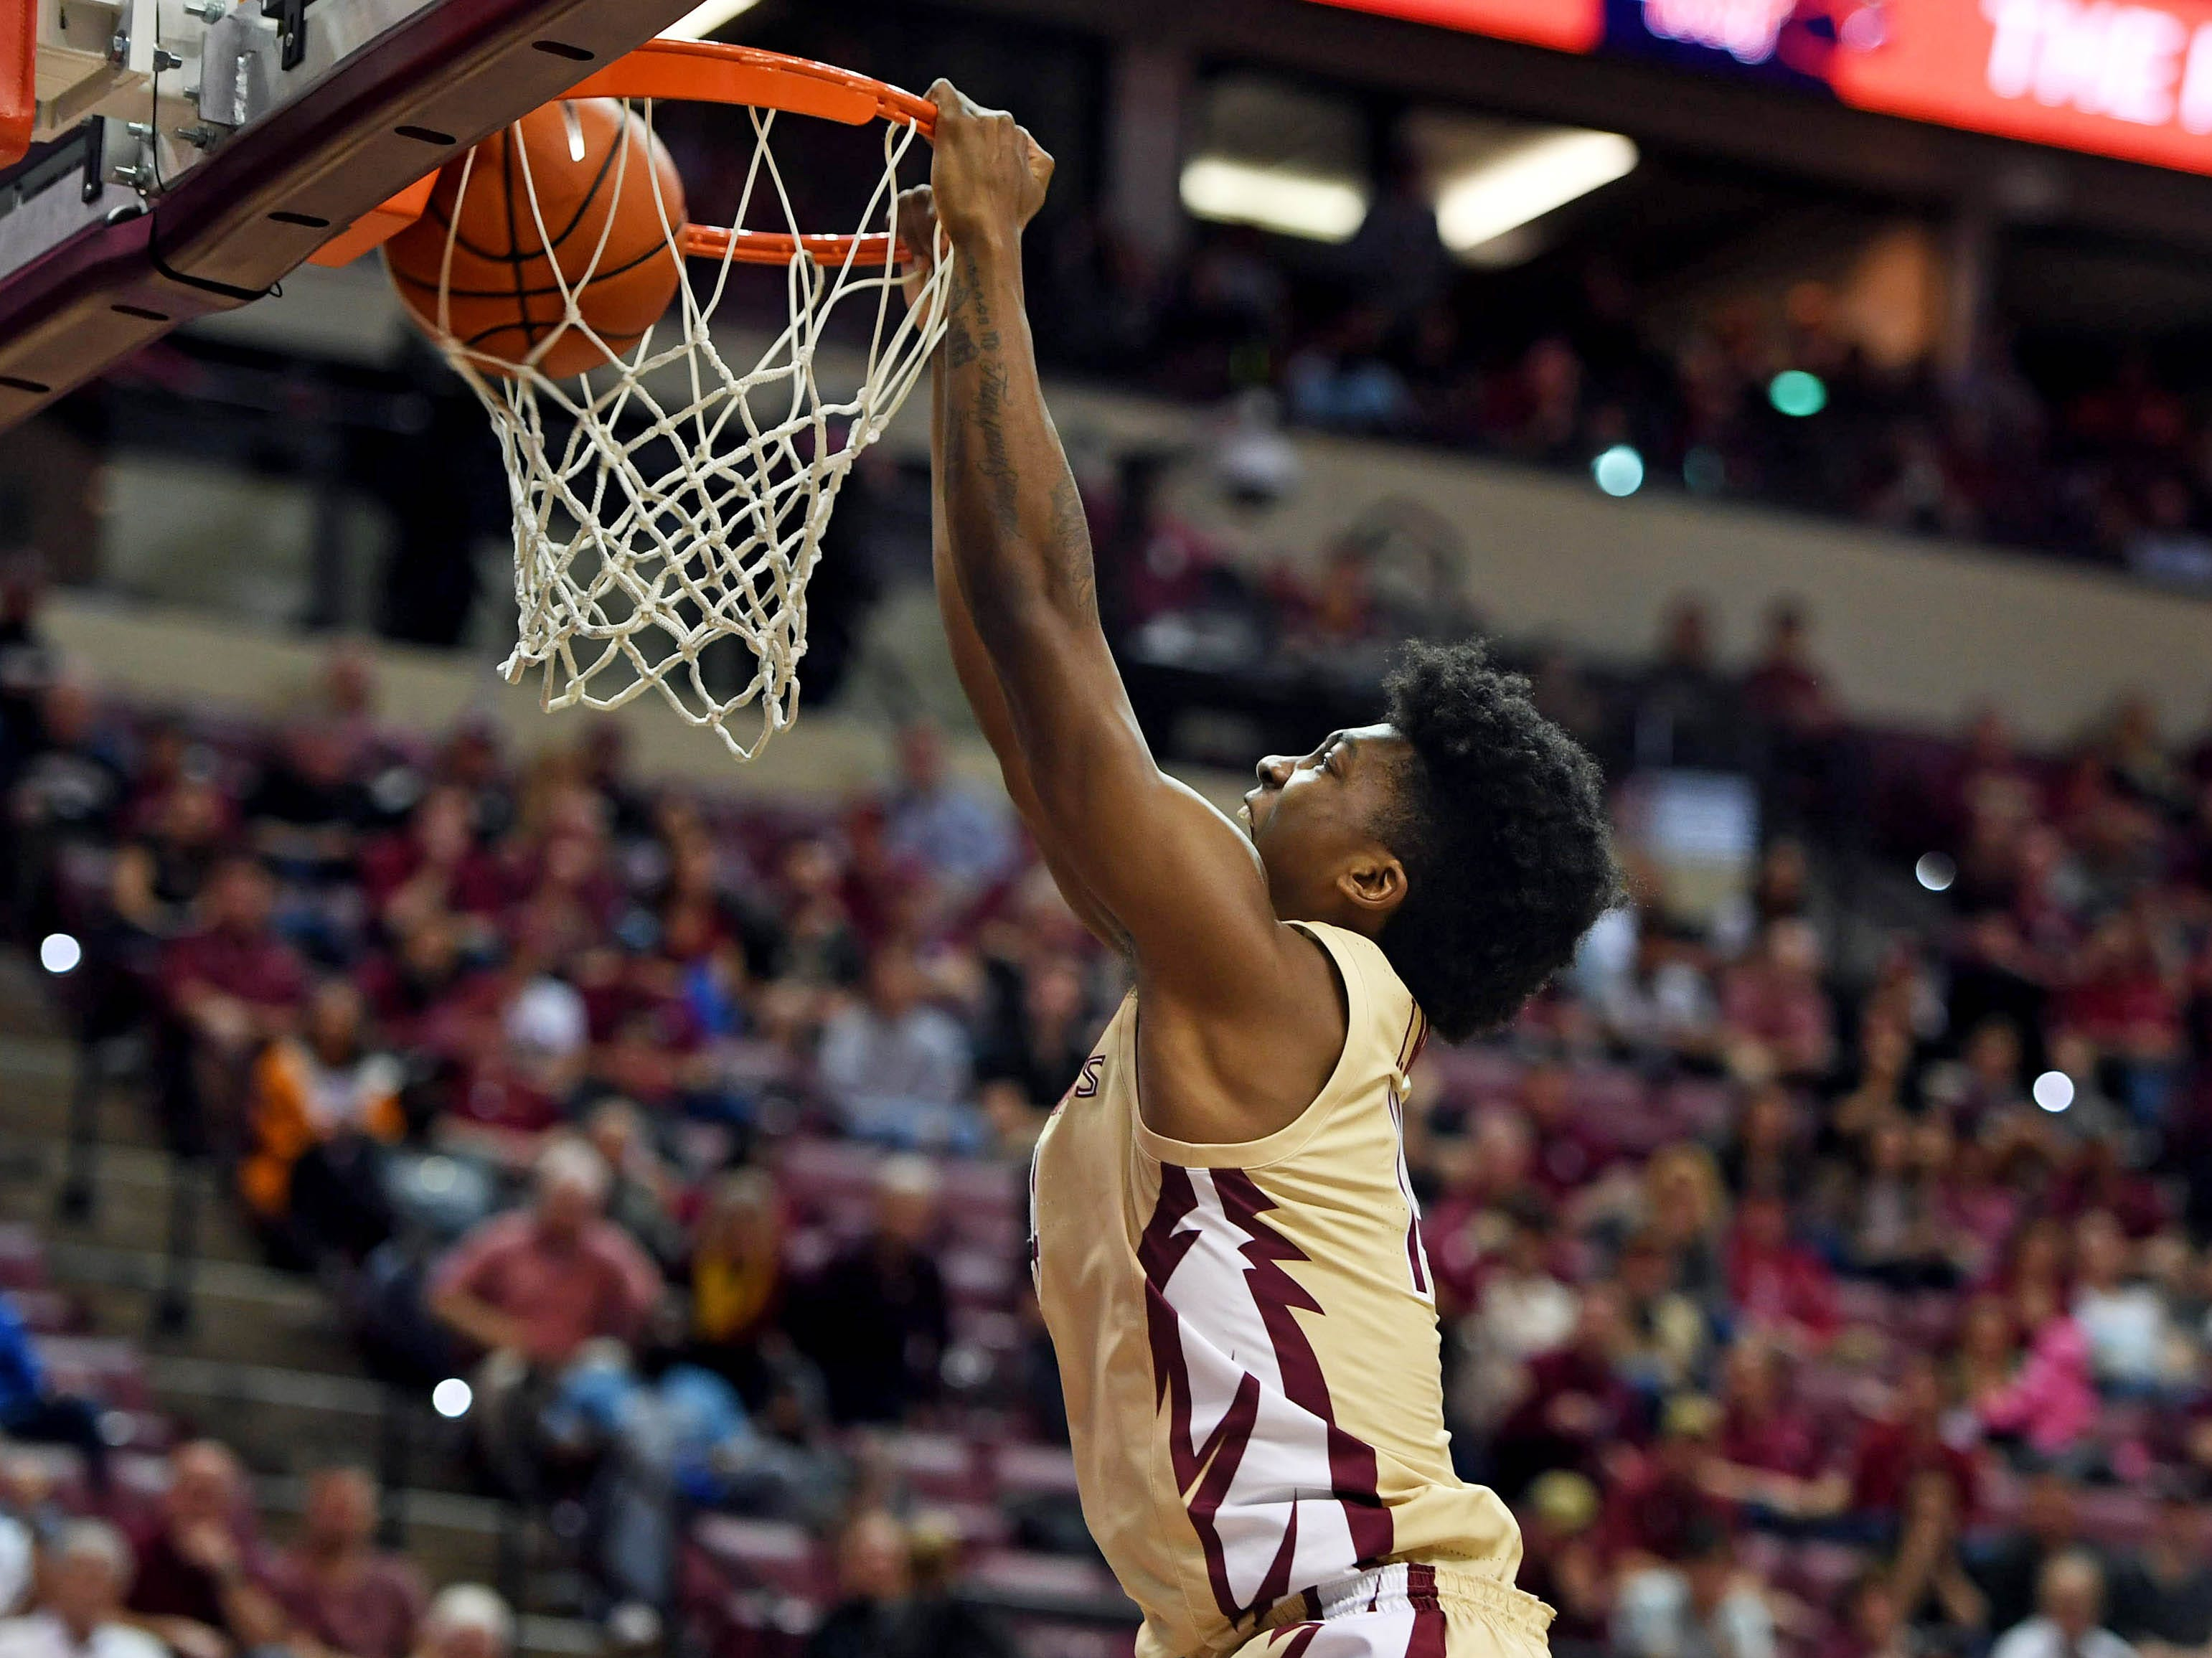 Mar 2, 2019; Tallahassee, FL, USA; Florida State Seminoles guard Terance Mann (14) dunks the ball during the second half of the game against the North Carolina State Wolfpack at Donald L. Tucker Center. Mandatory Credit: Melina Myers-USA TODAY Sports